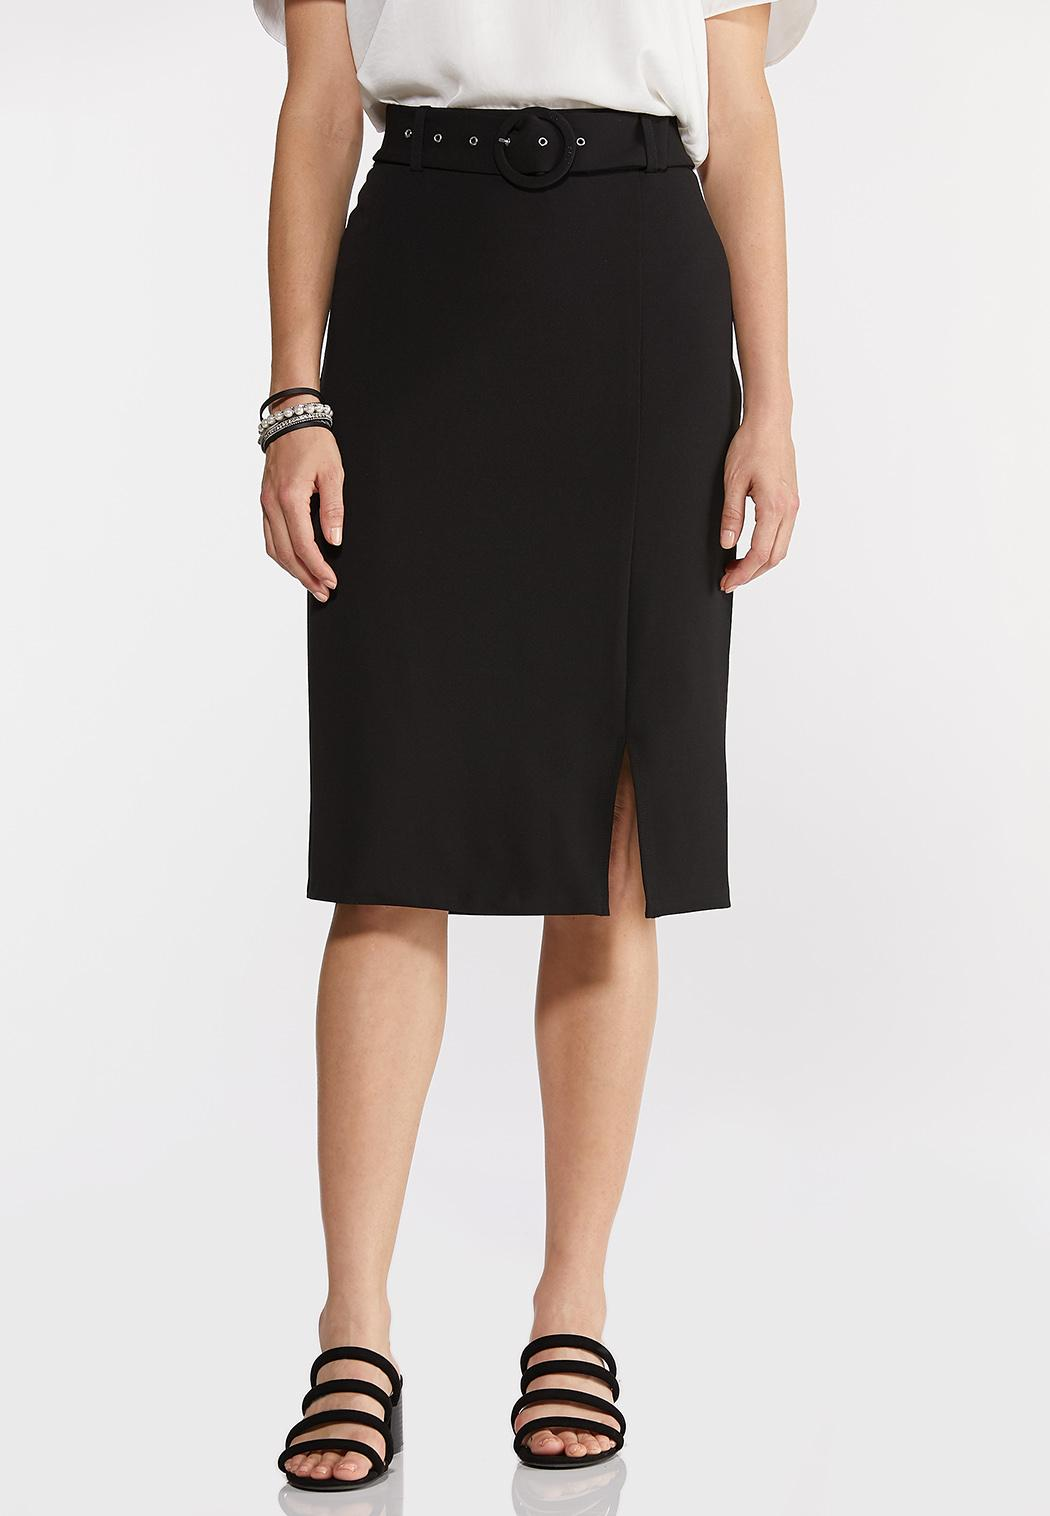 Plus Size Belted Pencil Skirt (Item #44288810)